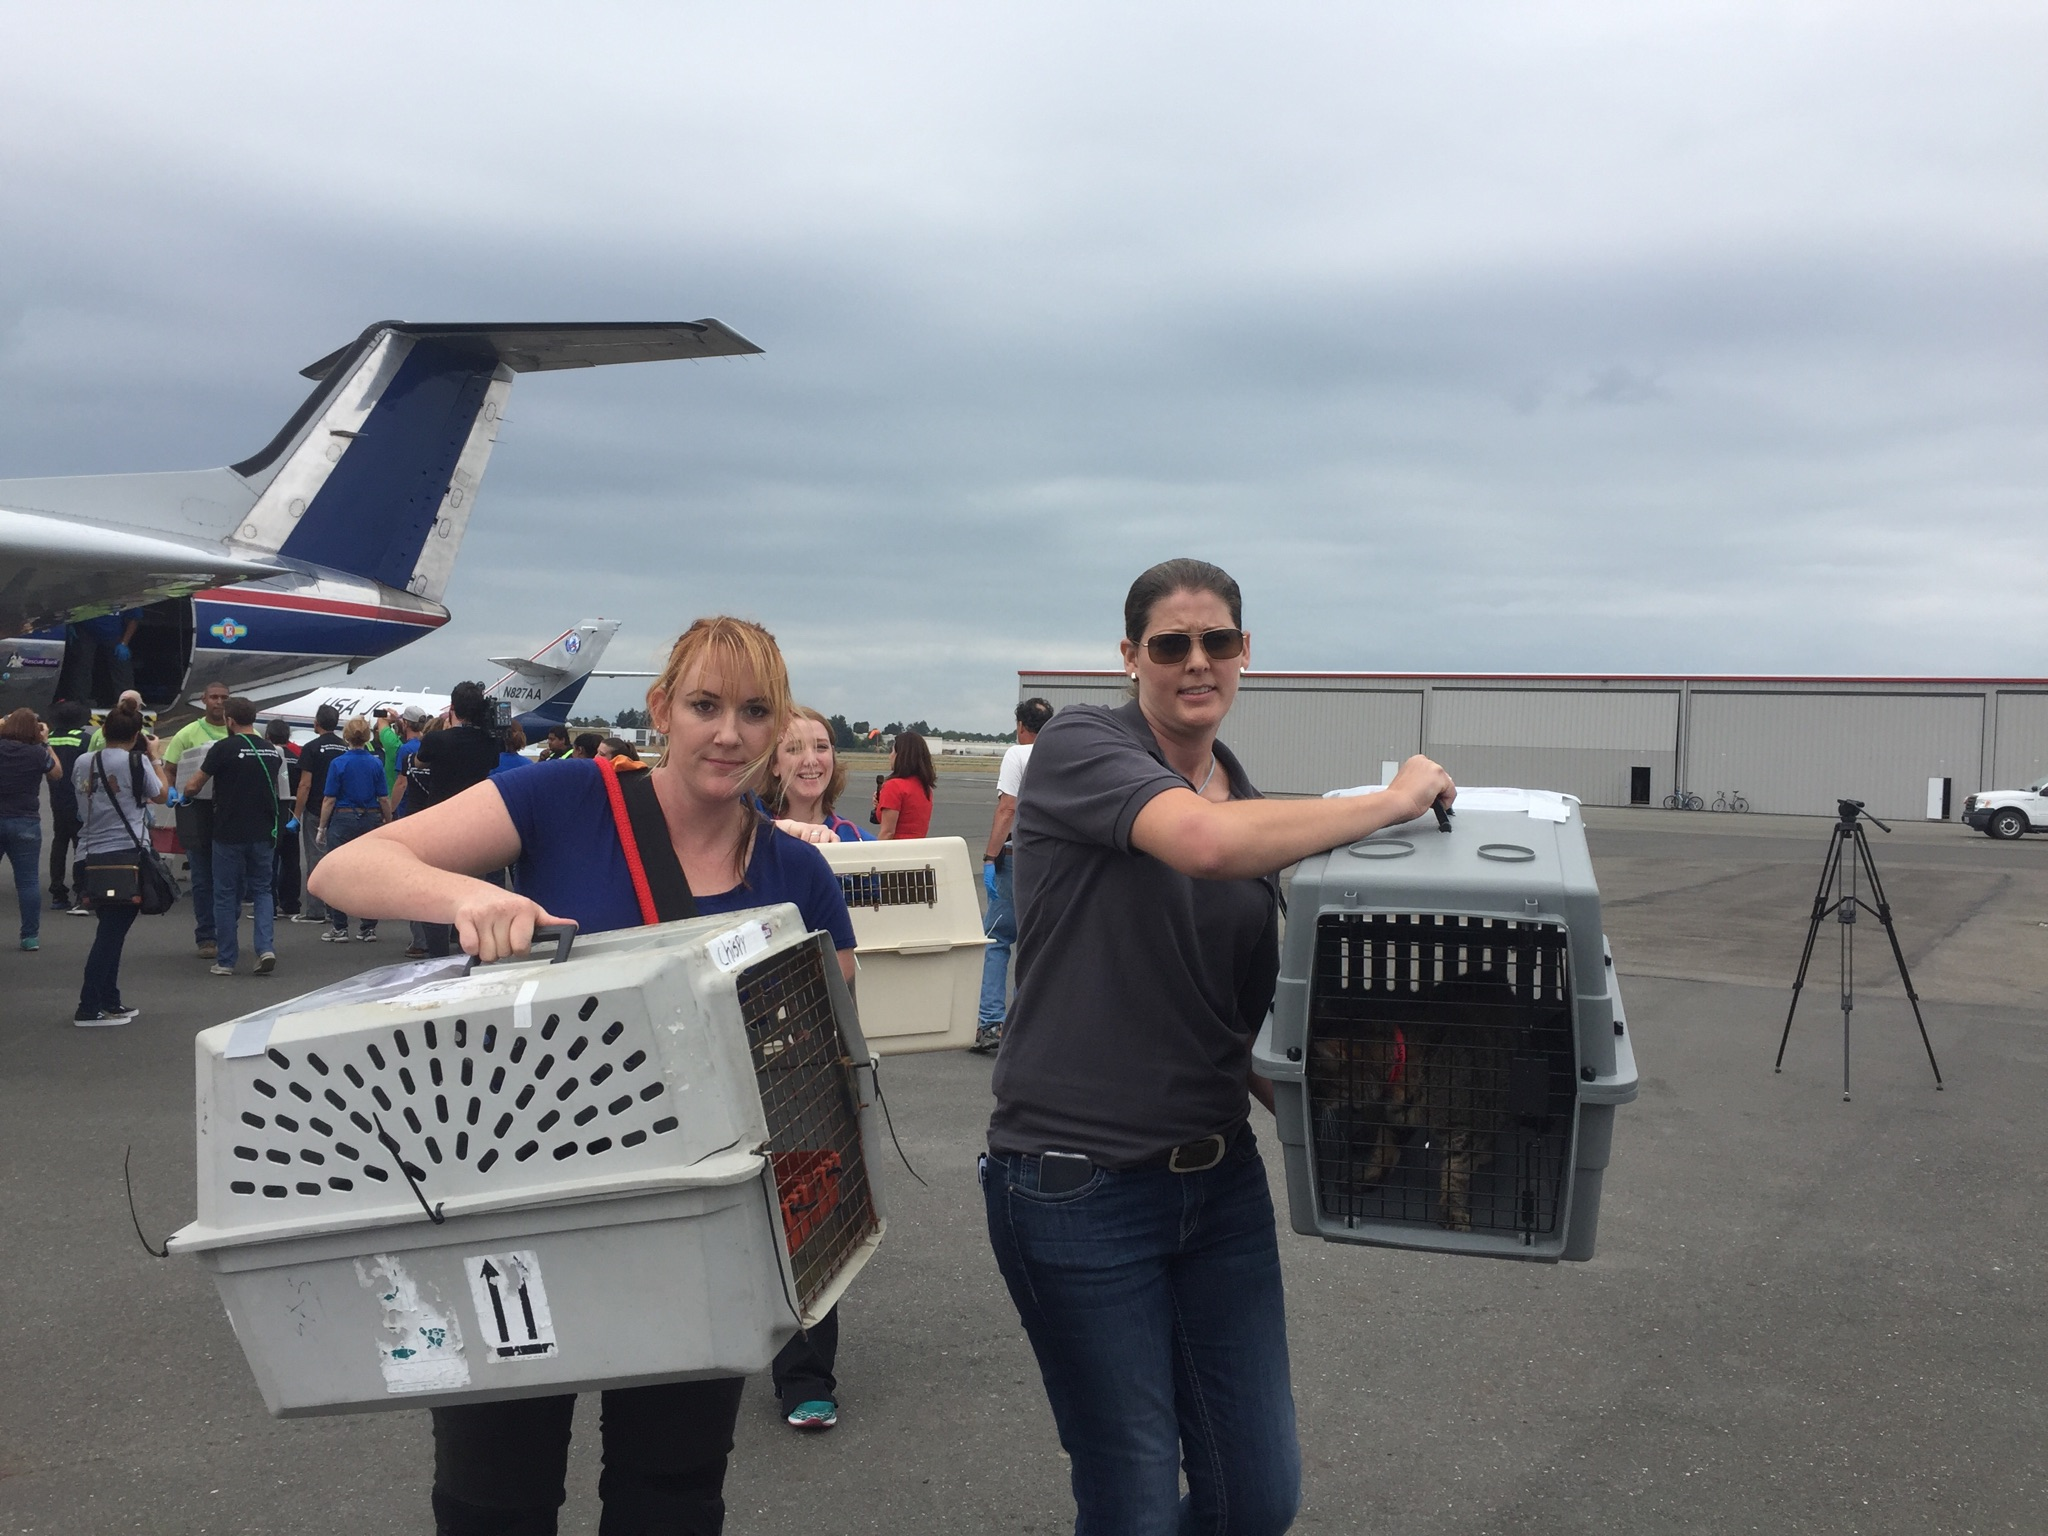 Animals were vetted on the tarmac and then distributed among three local animal-rescue shelters